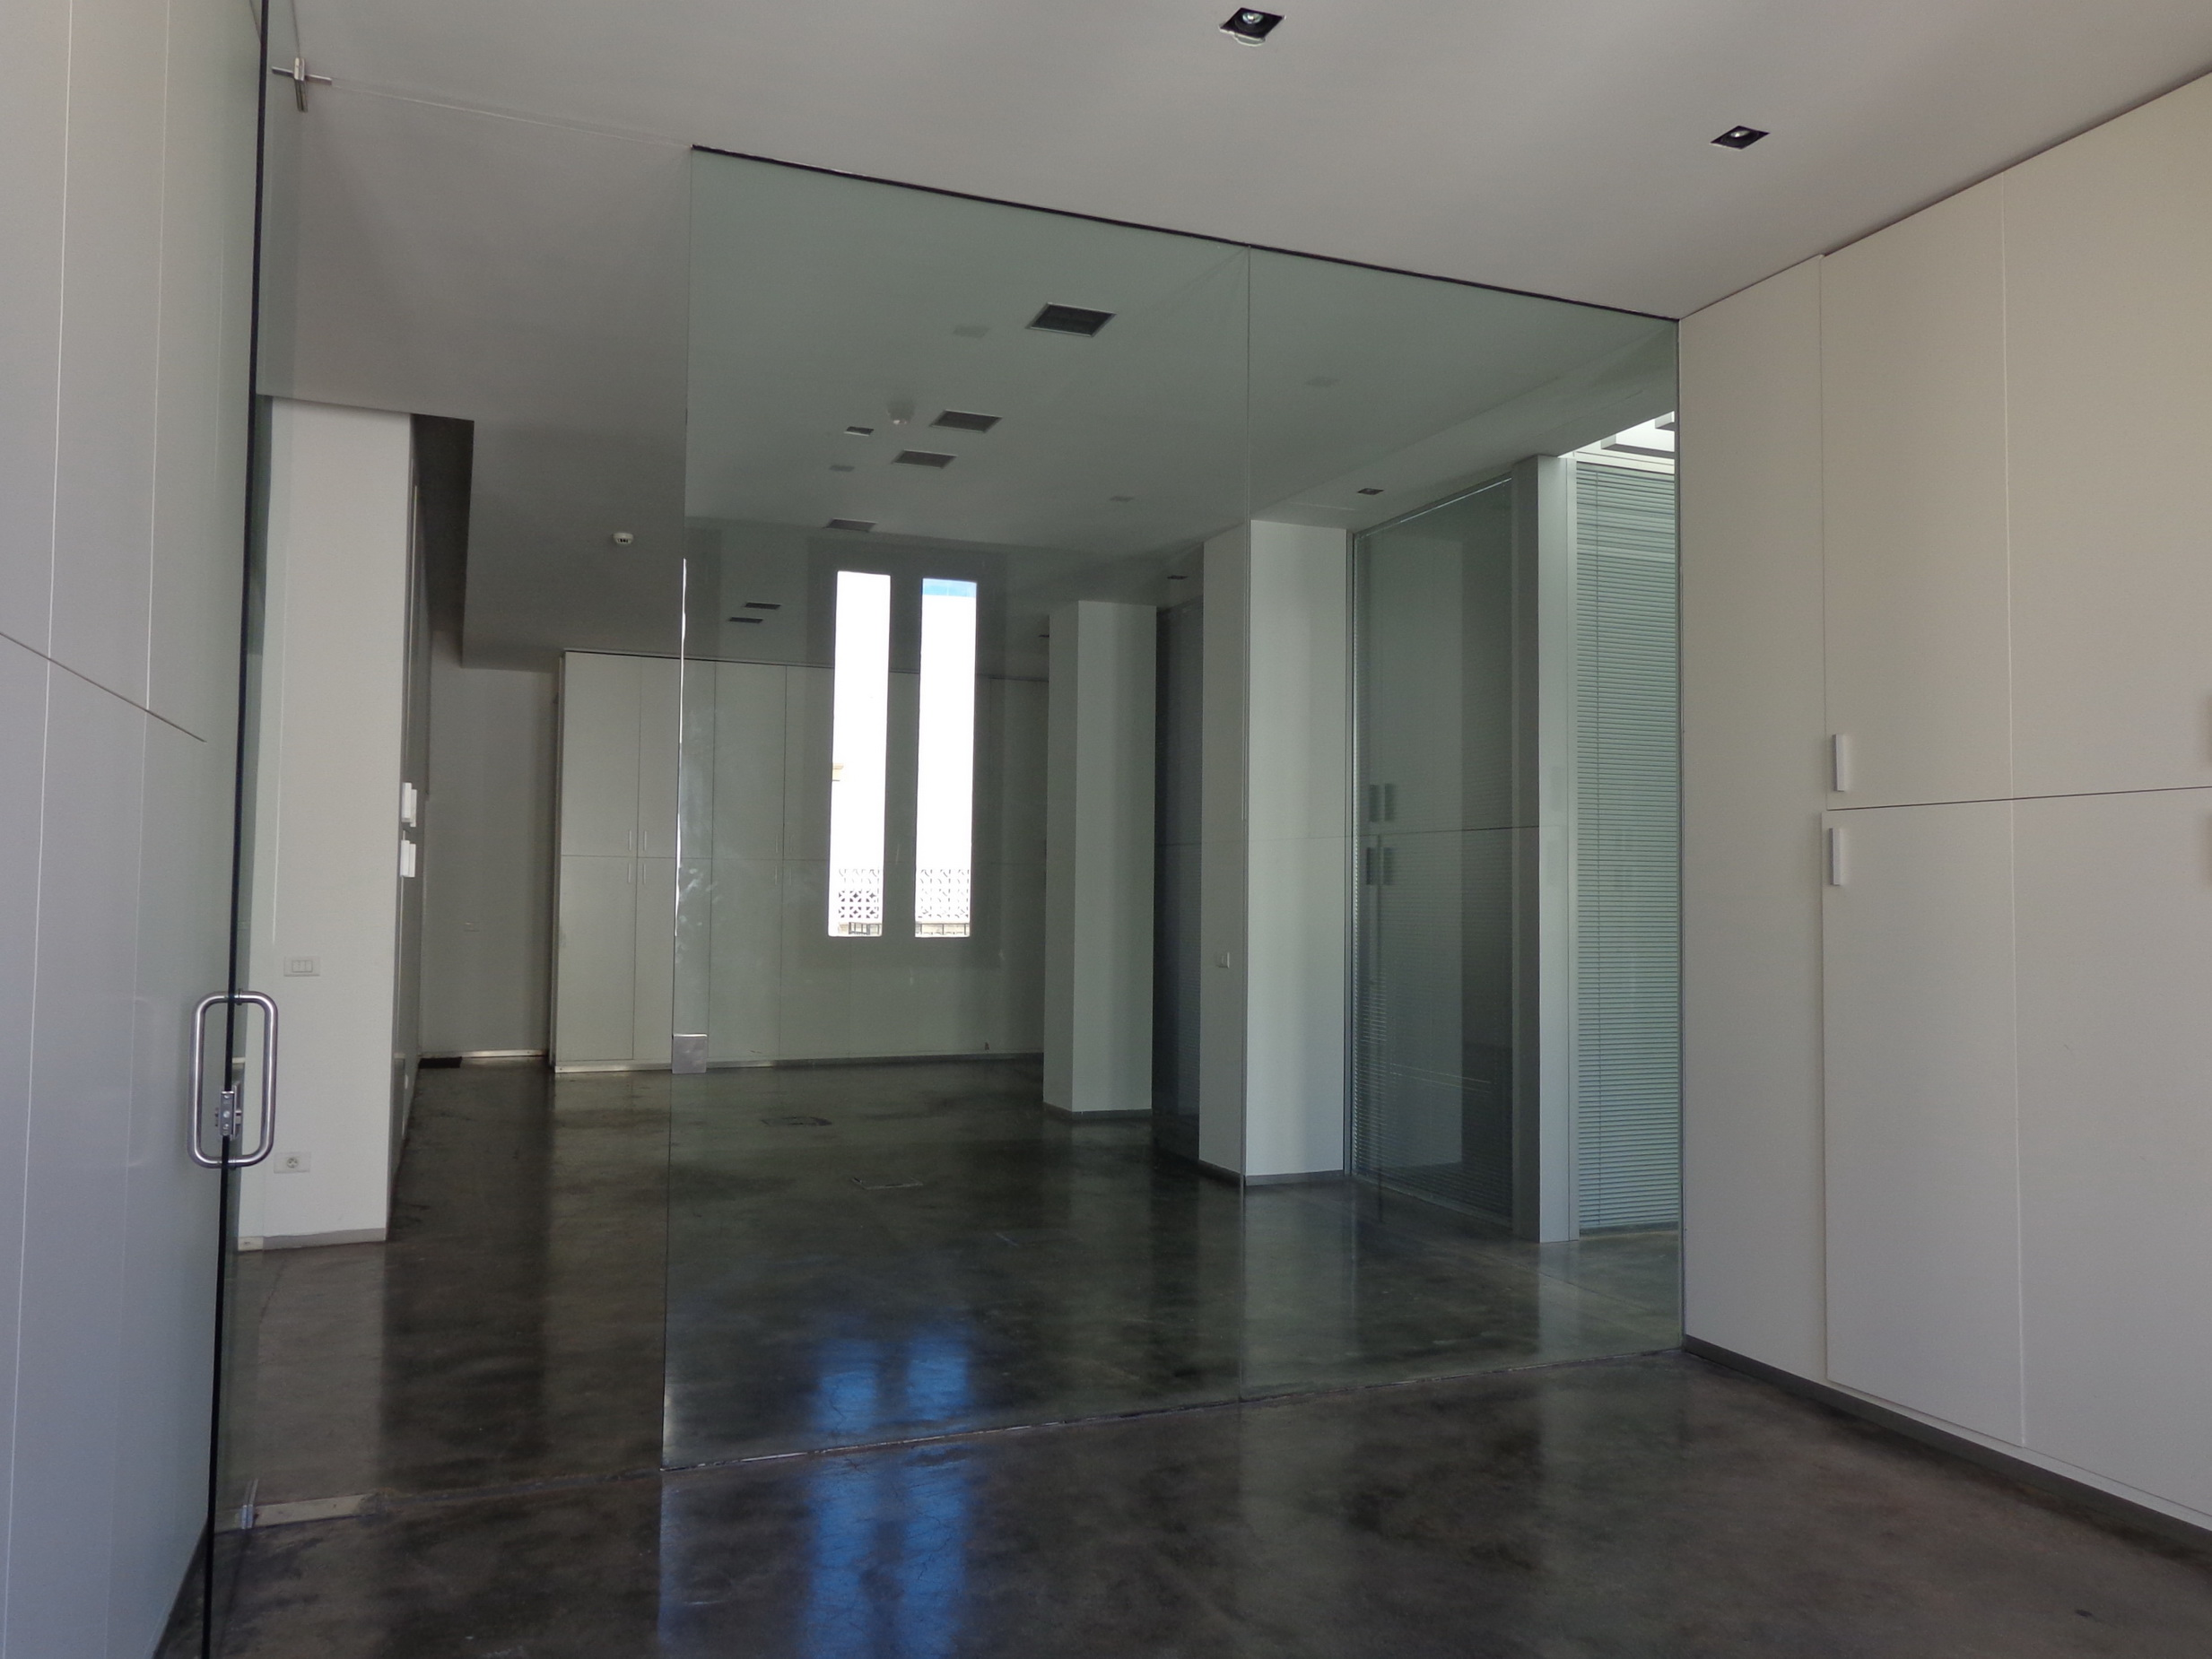 Office for Rent, Beirut Central District, 325 sqm,  97,500 USD